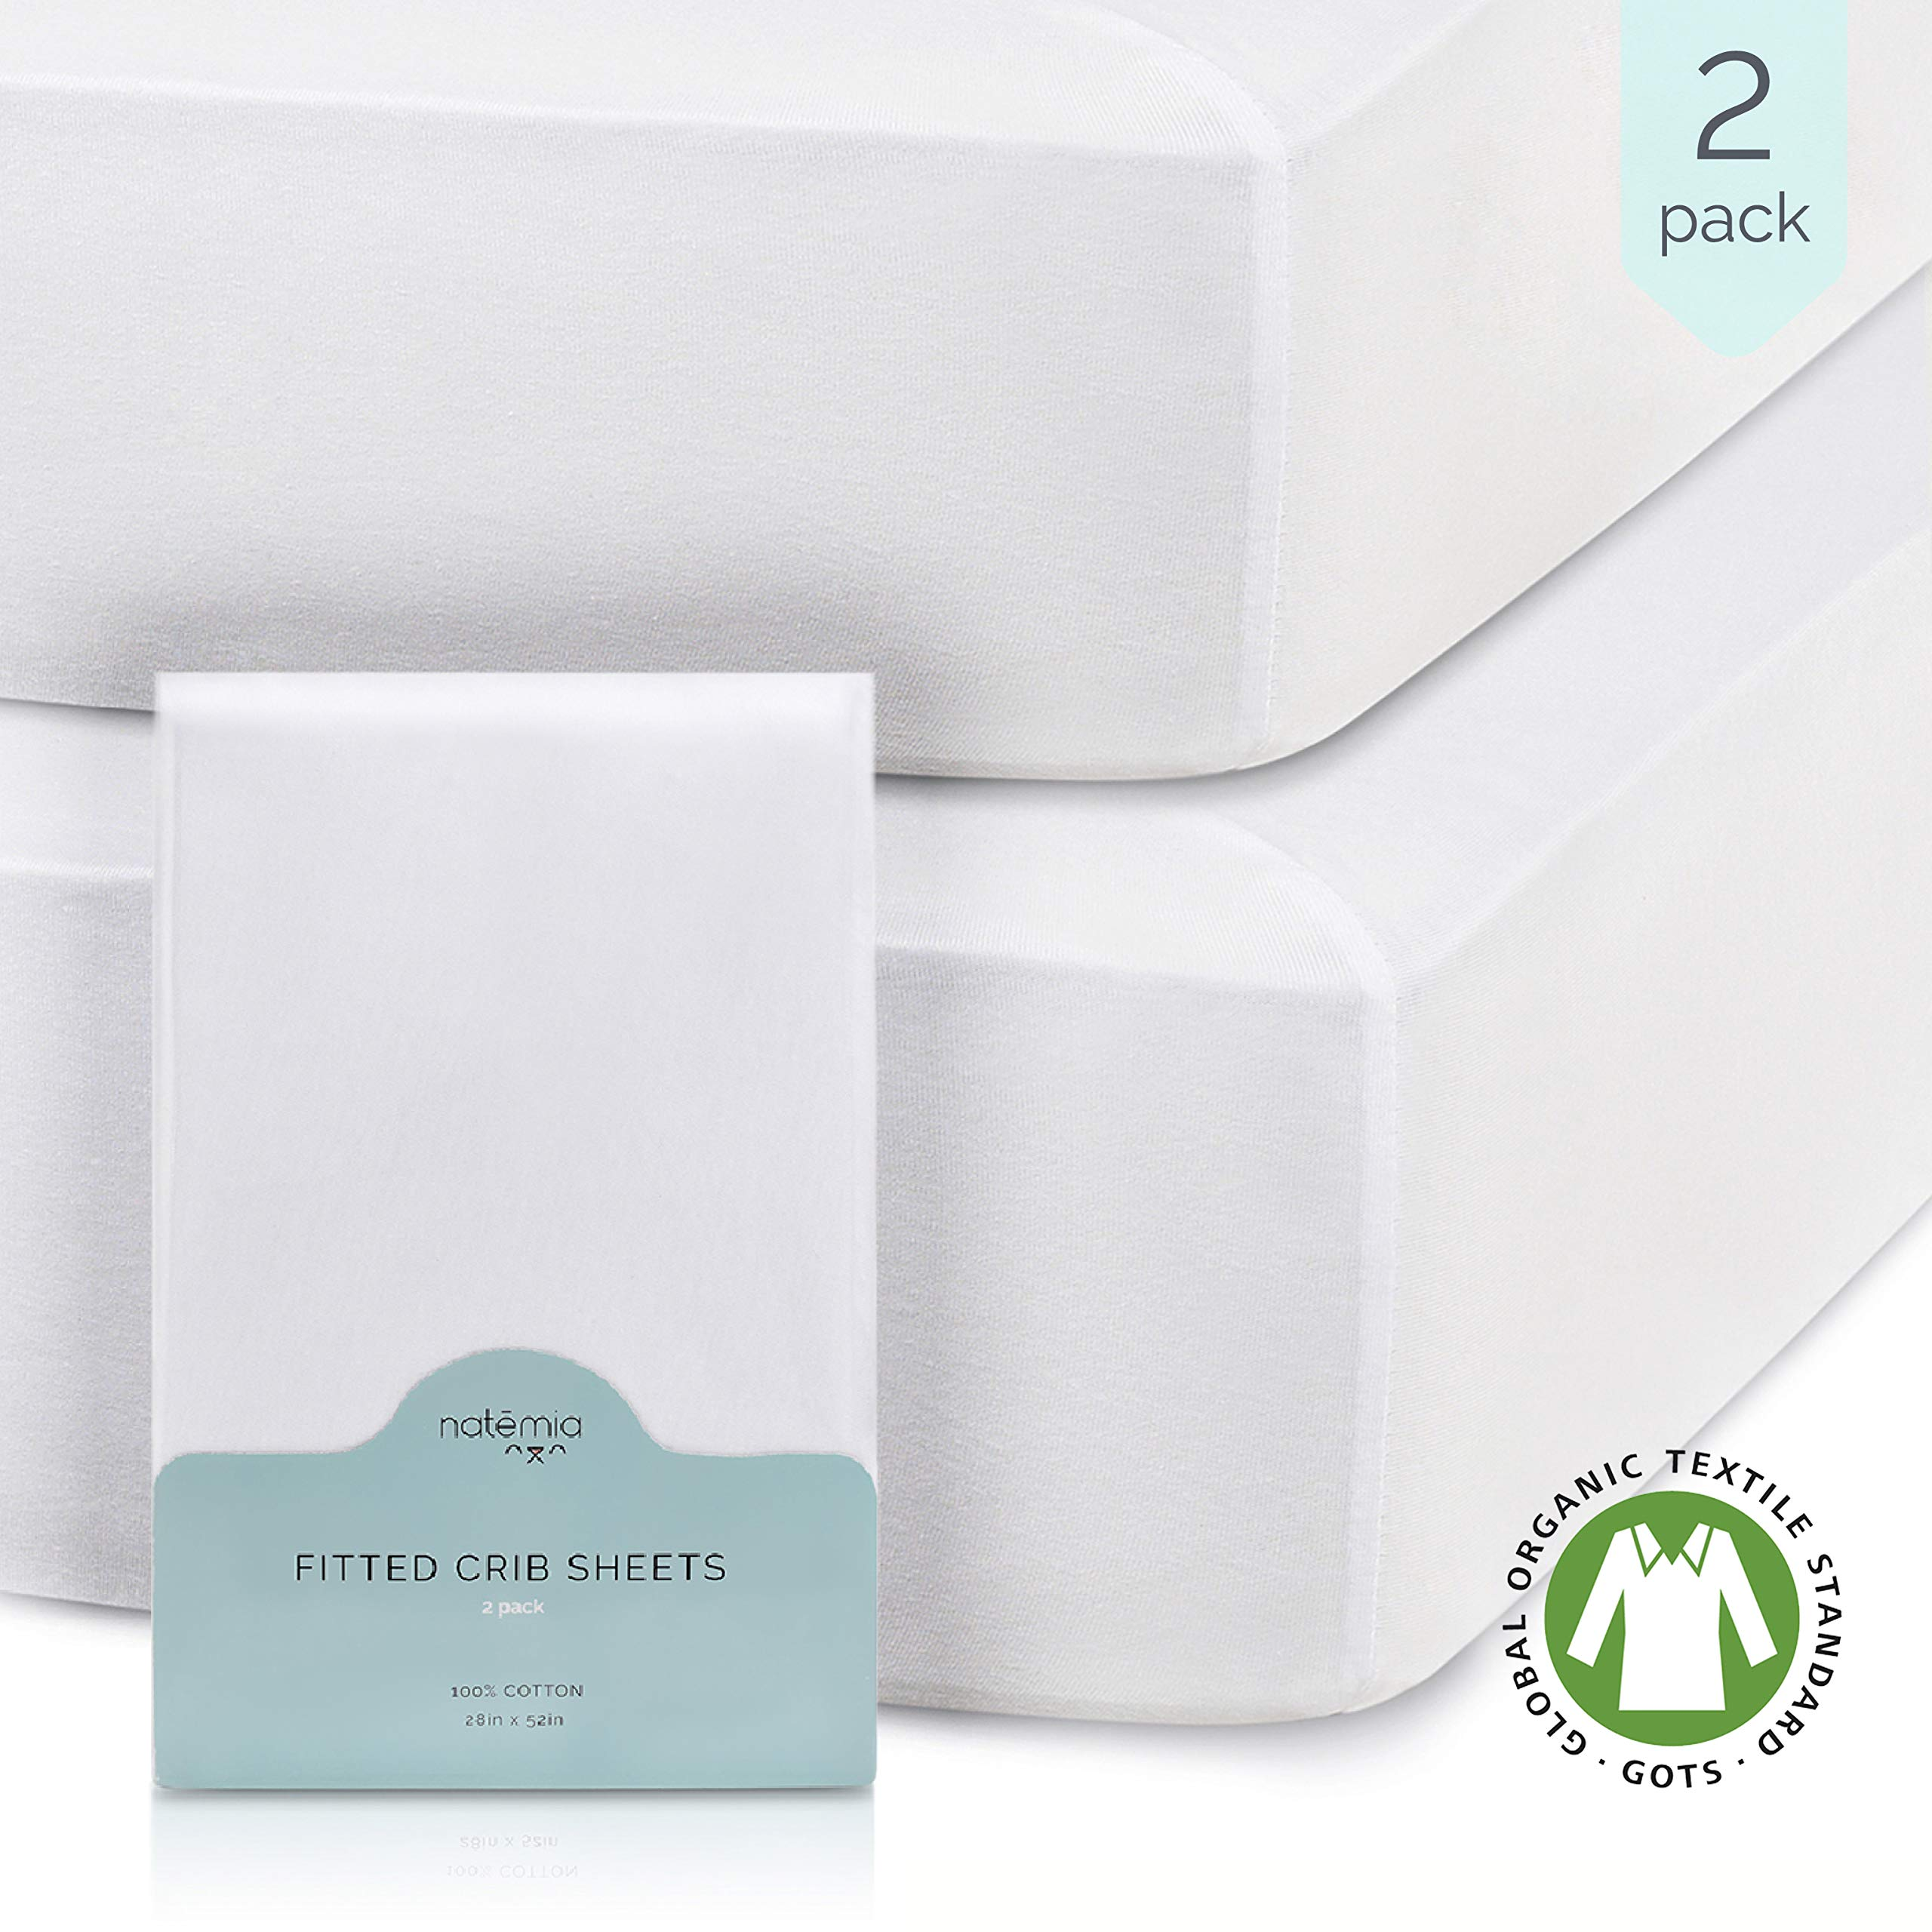 Natemia Fitted Crib Sheets - 100% Organic Turkish Cotton - Pack of 2-28 X 52 for Standard Crib and Toddler Mattresses - Silky Soft and Hypoallergenic - GOTS Certified by Natemia